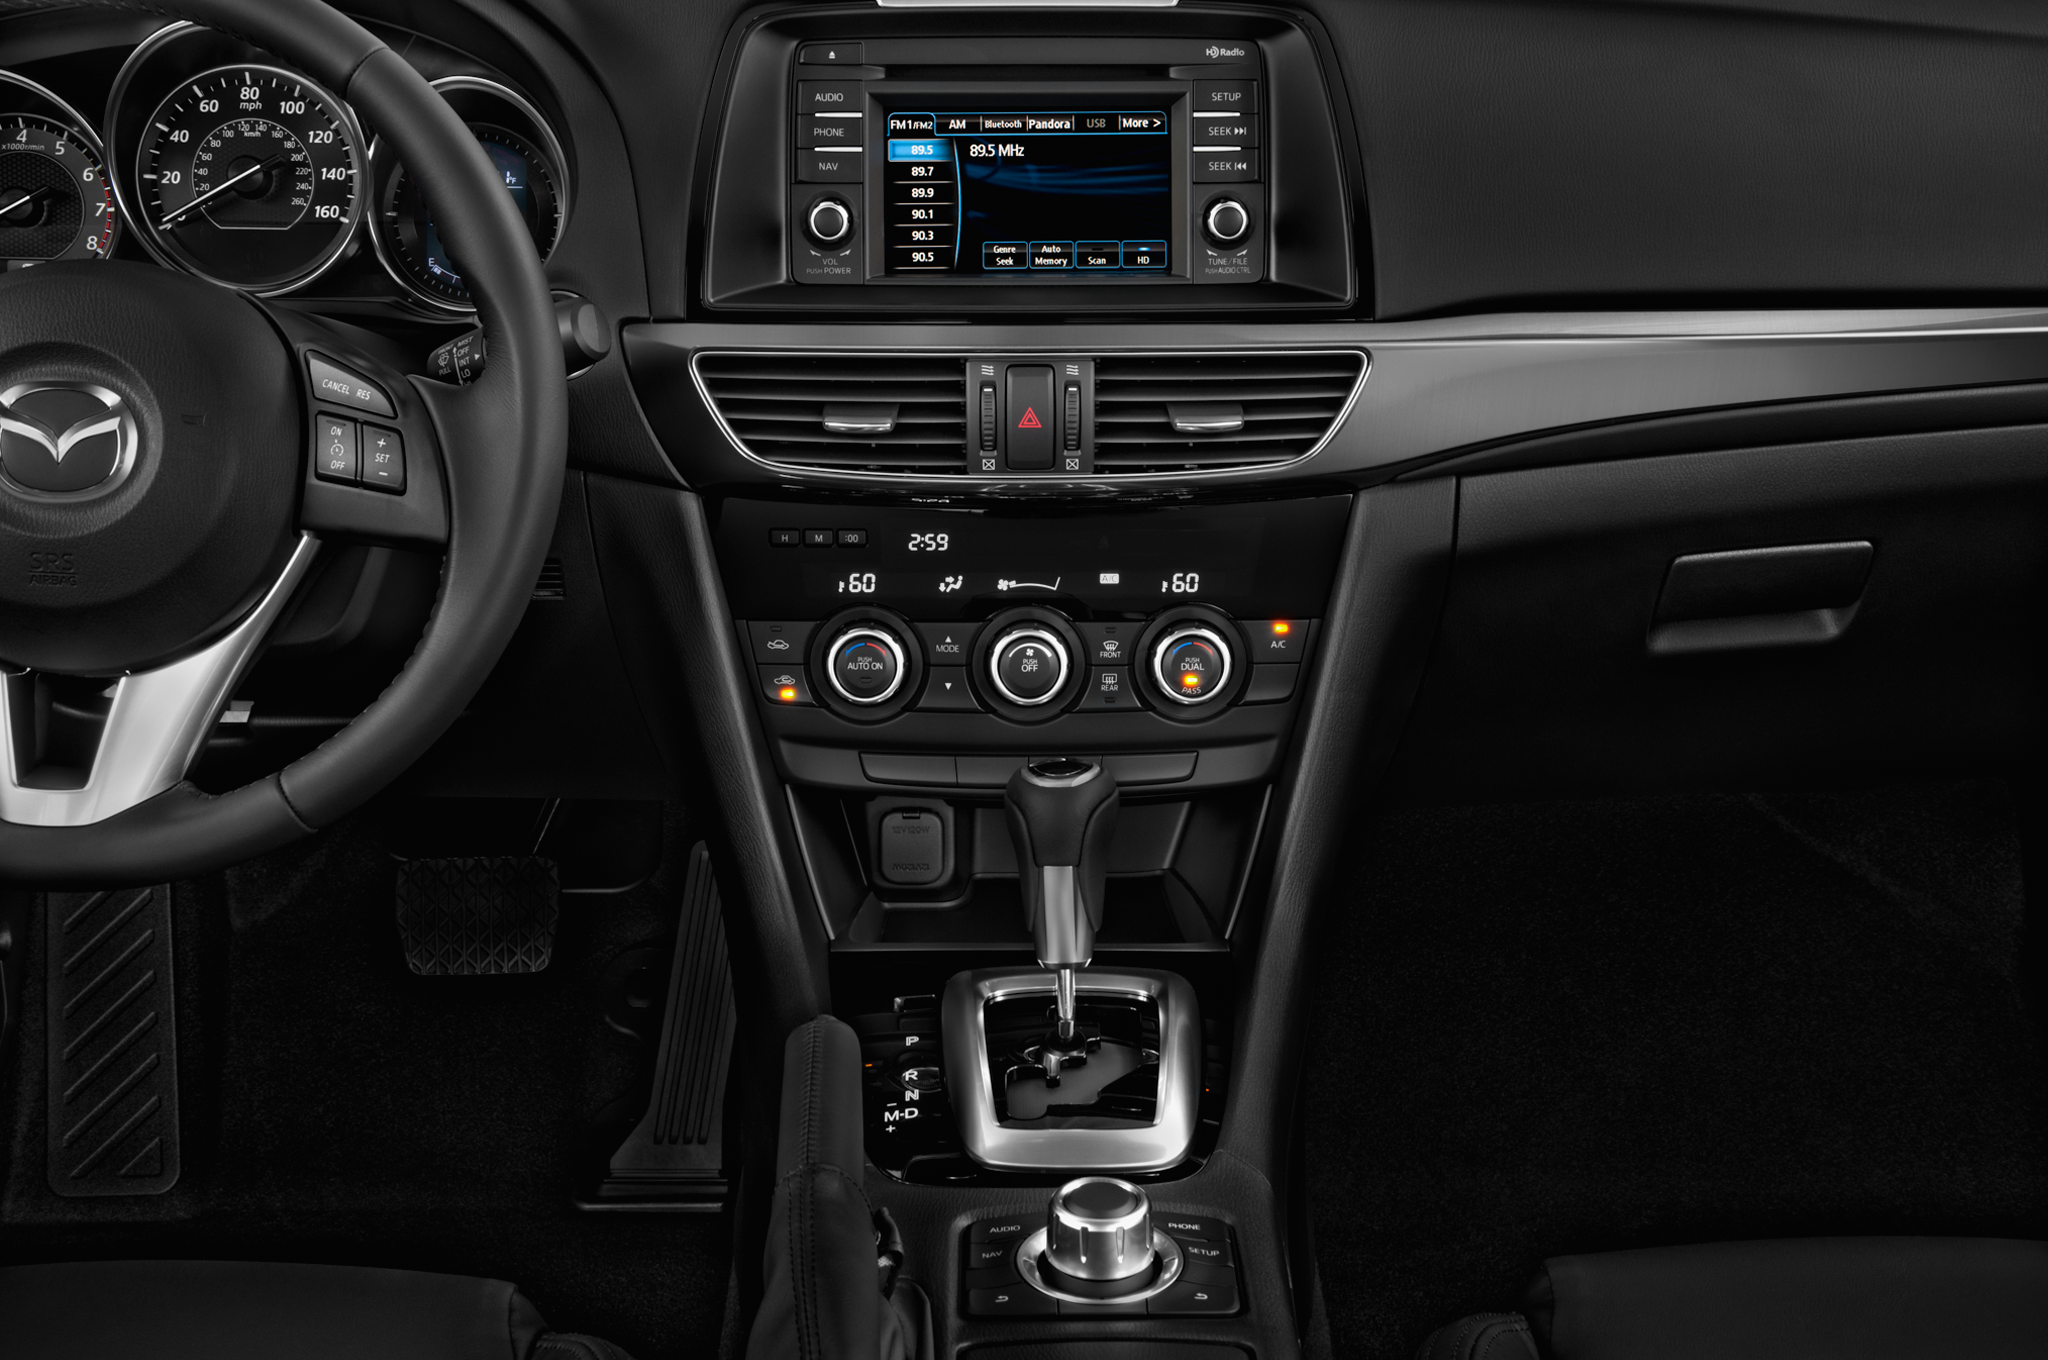 http://st.automobilemag.com/uploads/sites/10/2015/11/2015-mazda-mazda6-i-touring-sedan-instrument-panel1.png